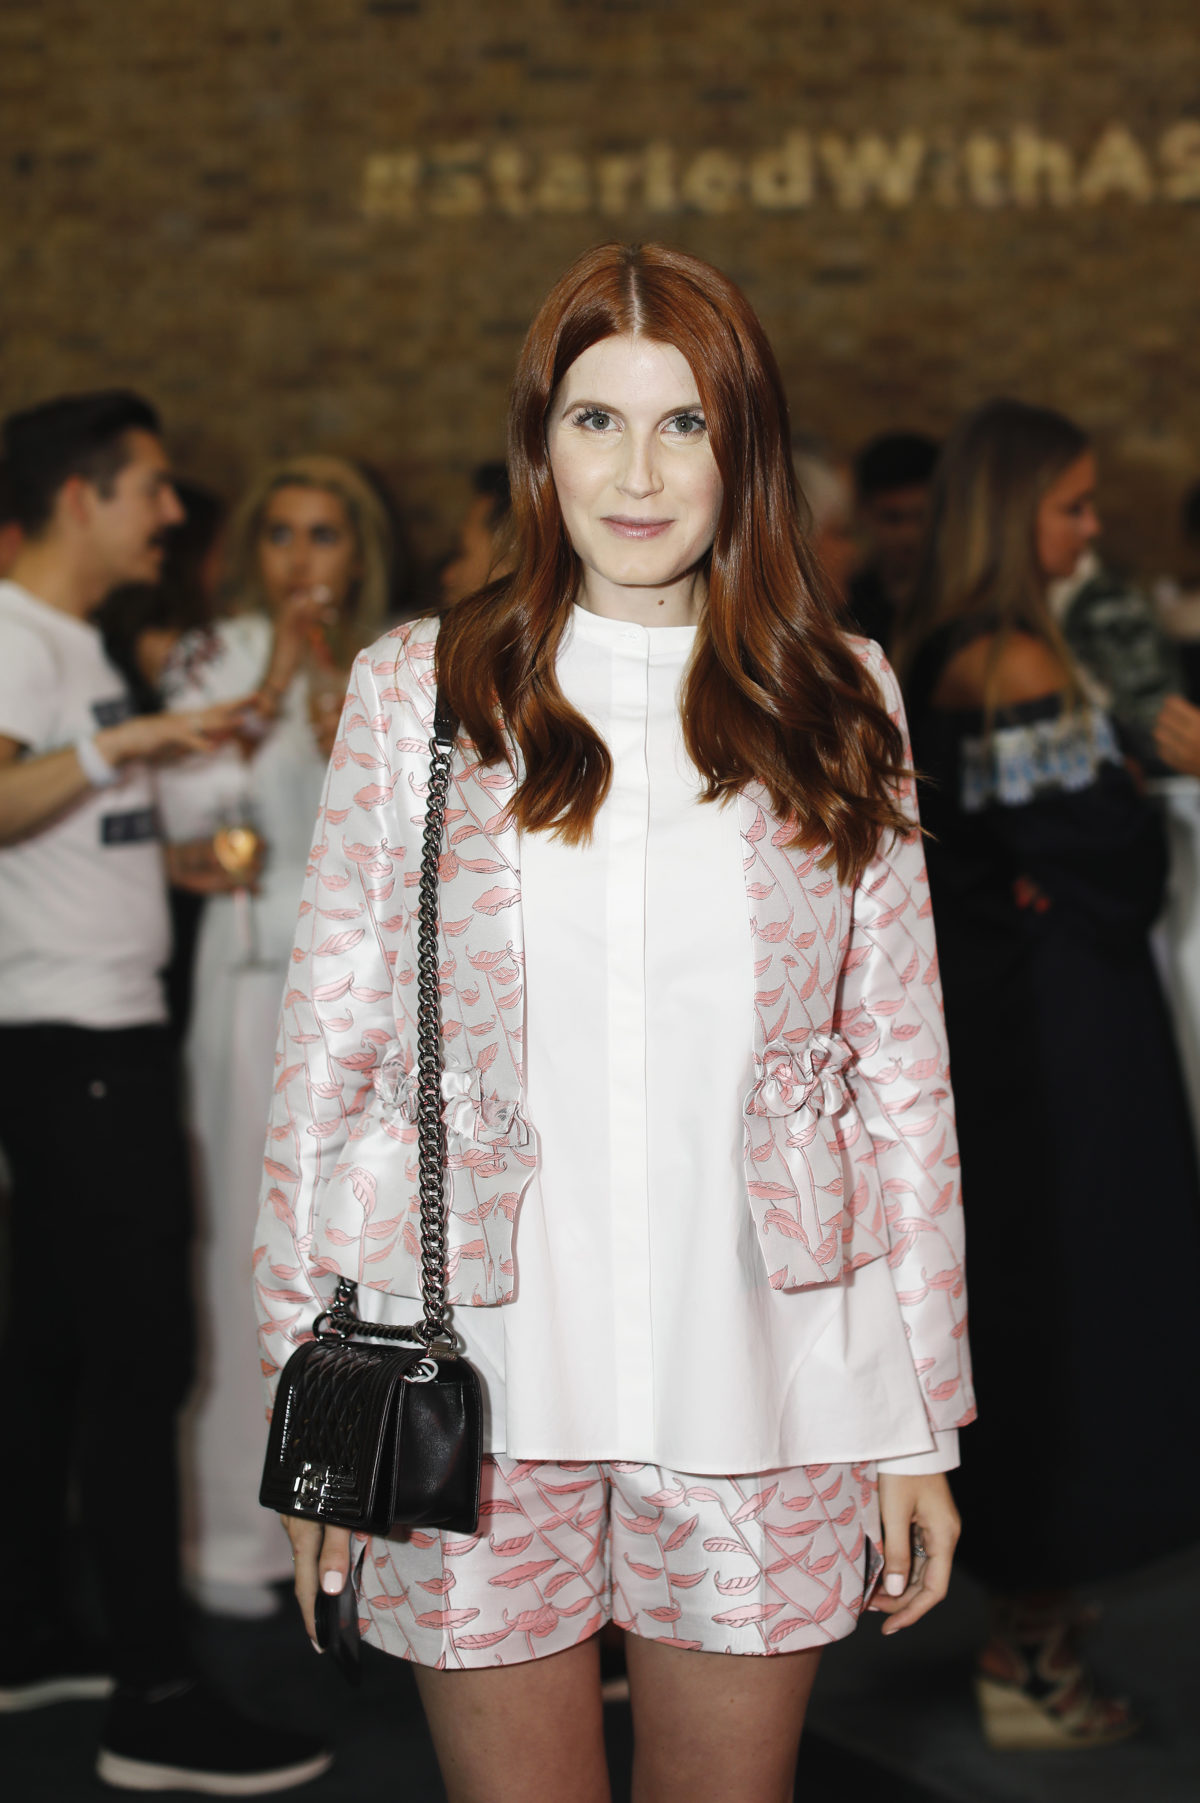 attends the LTK Summer Party at the Serpentine Sackler Gallery on Thursday 15th June 2017.